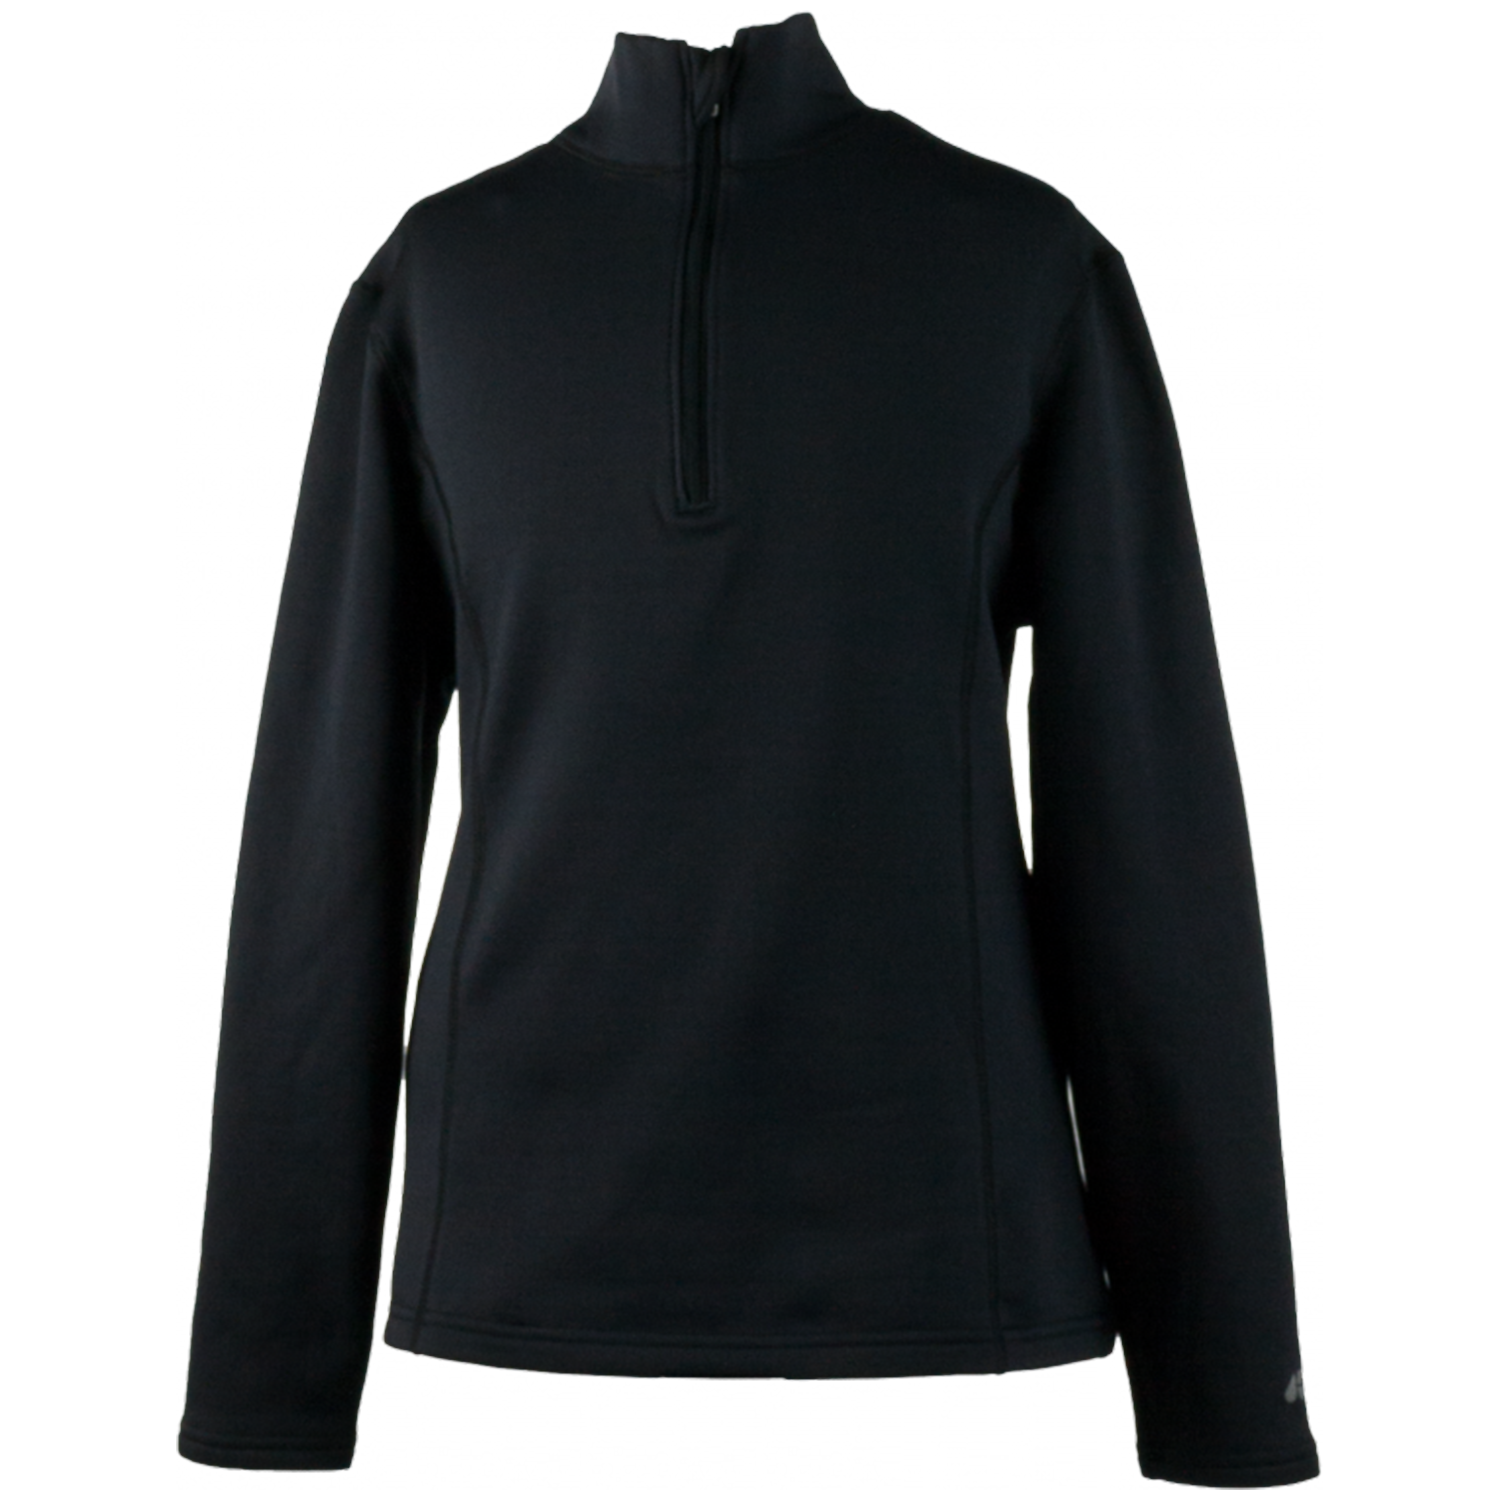 photo: Obermeyer Solace Elite 150wt Zip Top base layer top